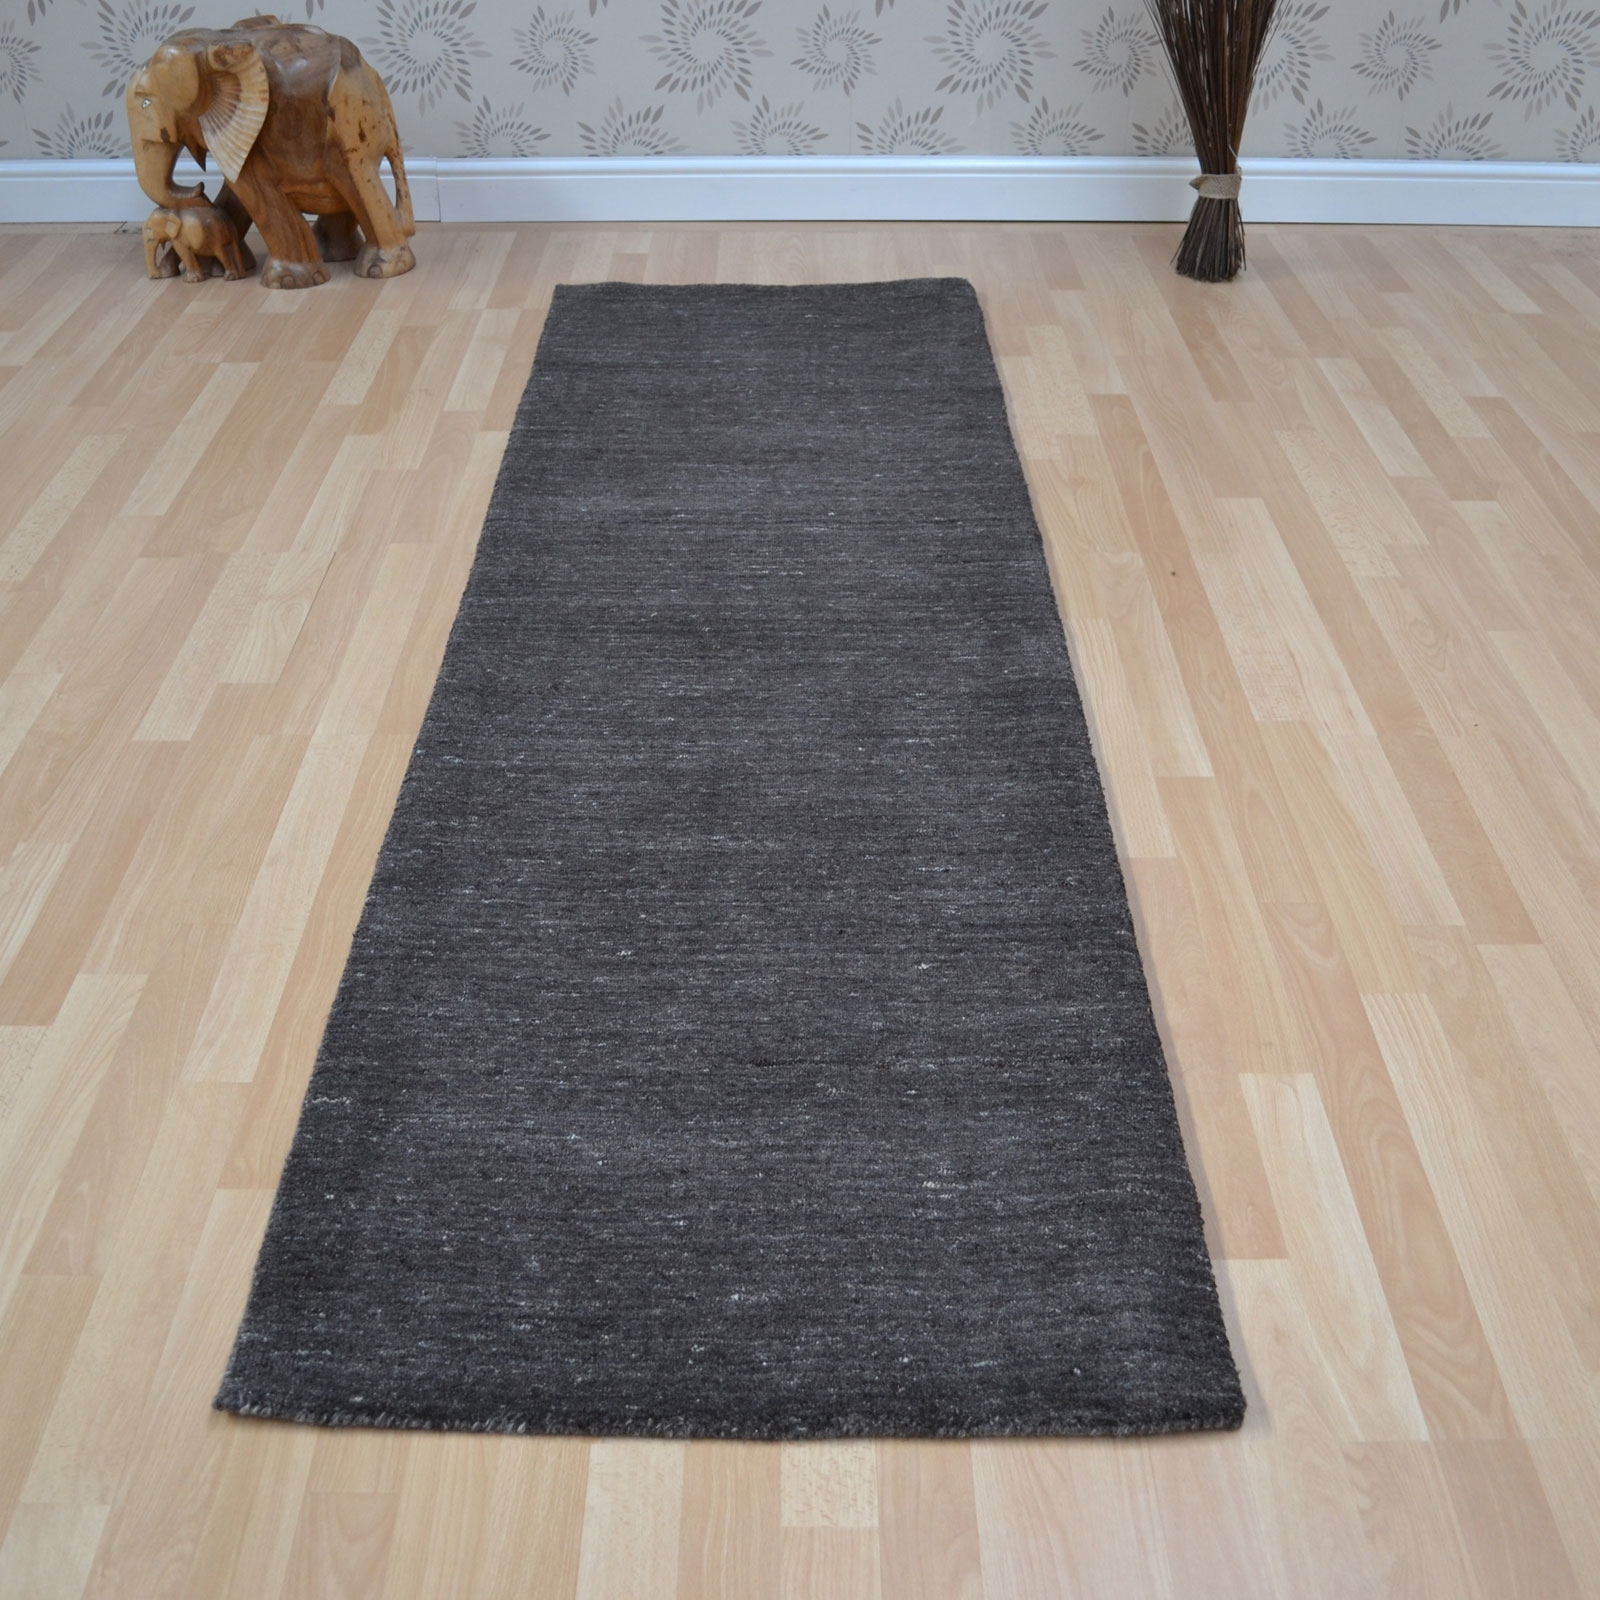 Plain Abrash Wool Hallway Runners In Charcoal Free Uk Delivery For Hallway Rugs And Runners (#18 of 20)